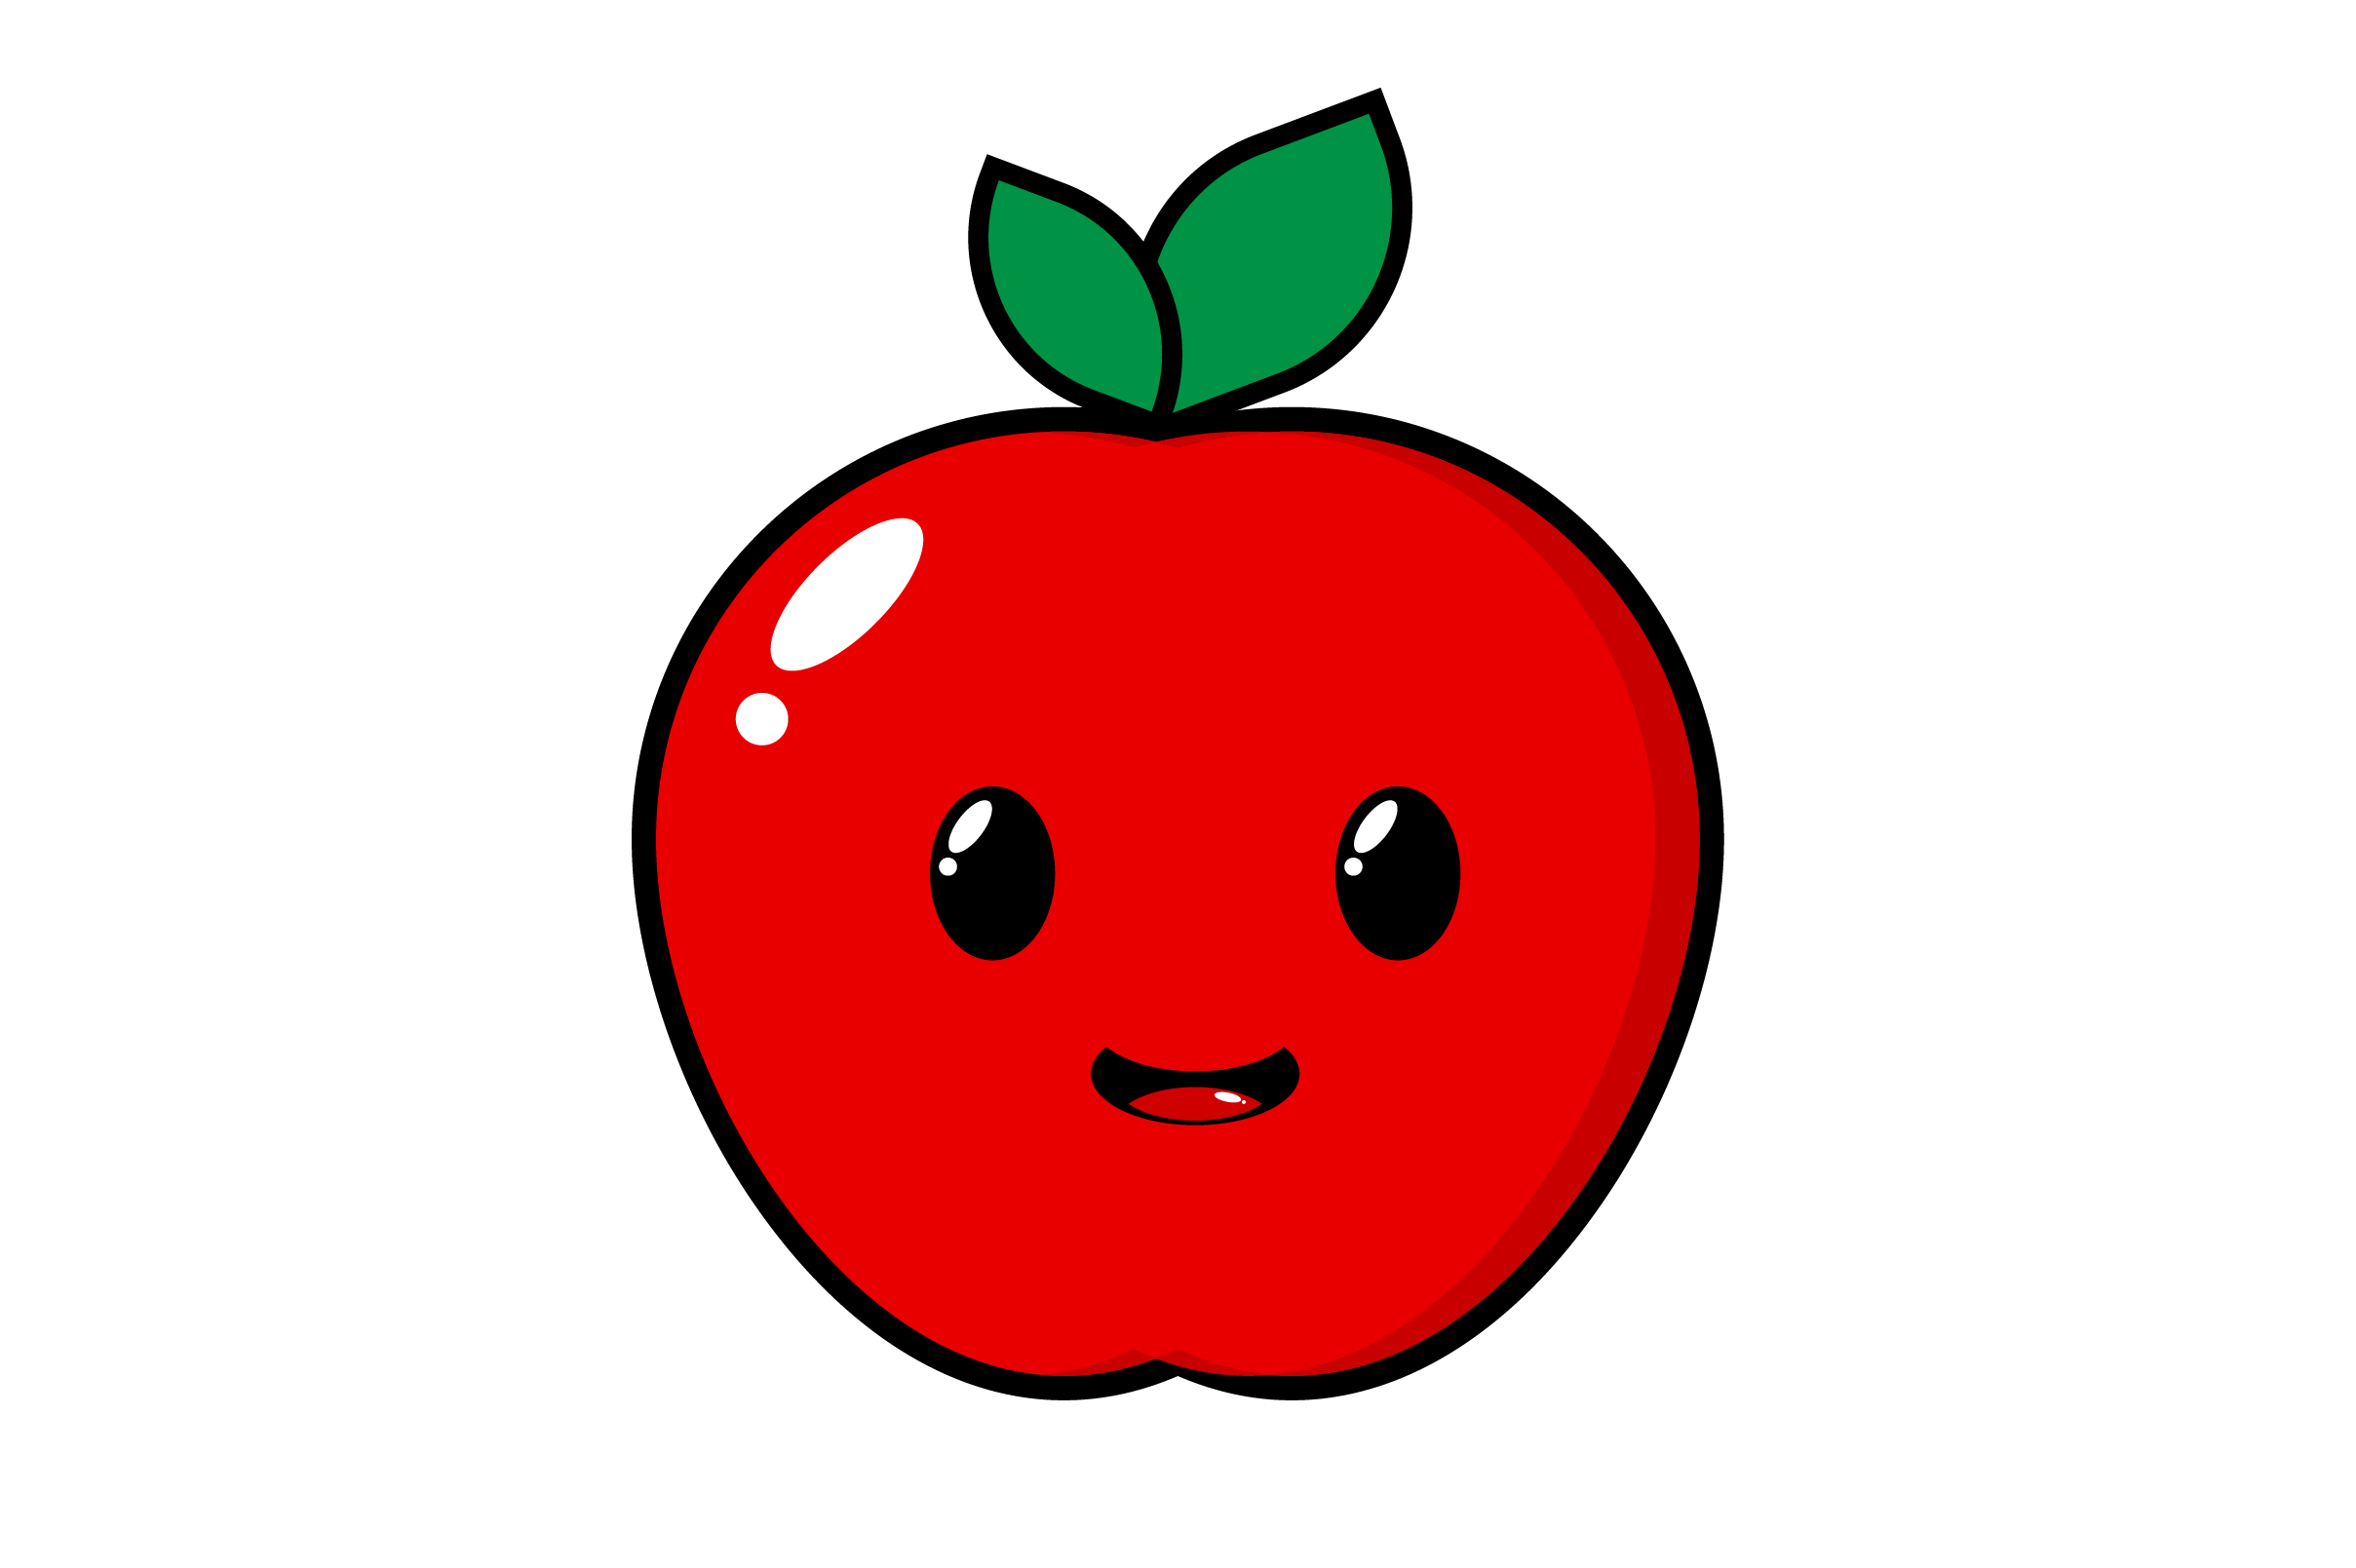 Download Free Happy Apple Clip Art Graphic By Masyafi Creative Studio for Cricut Explore, Silhouette and other cutting machines.